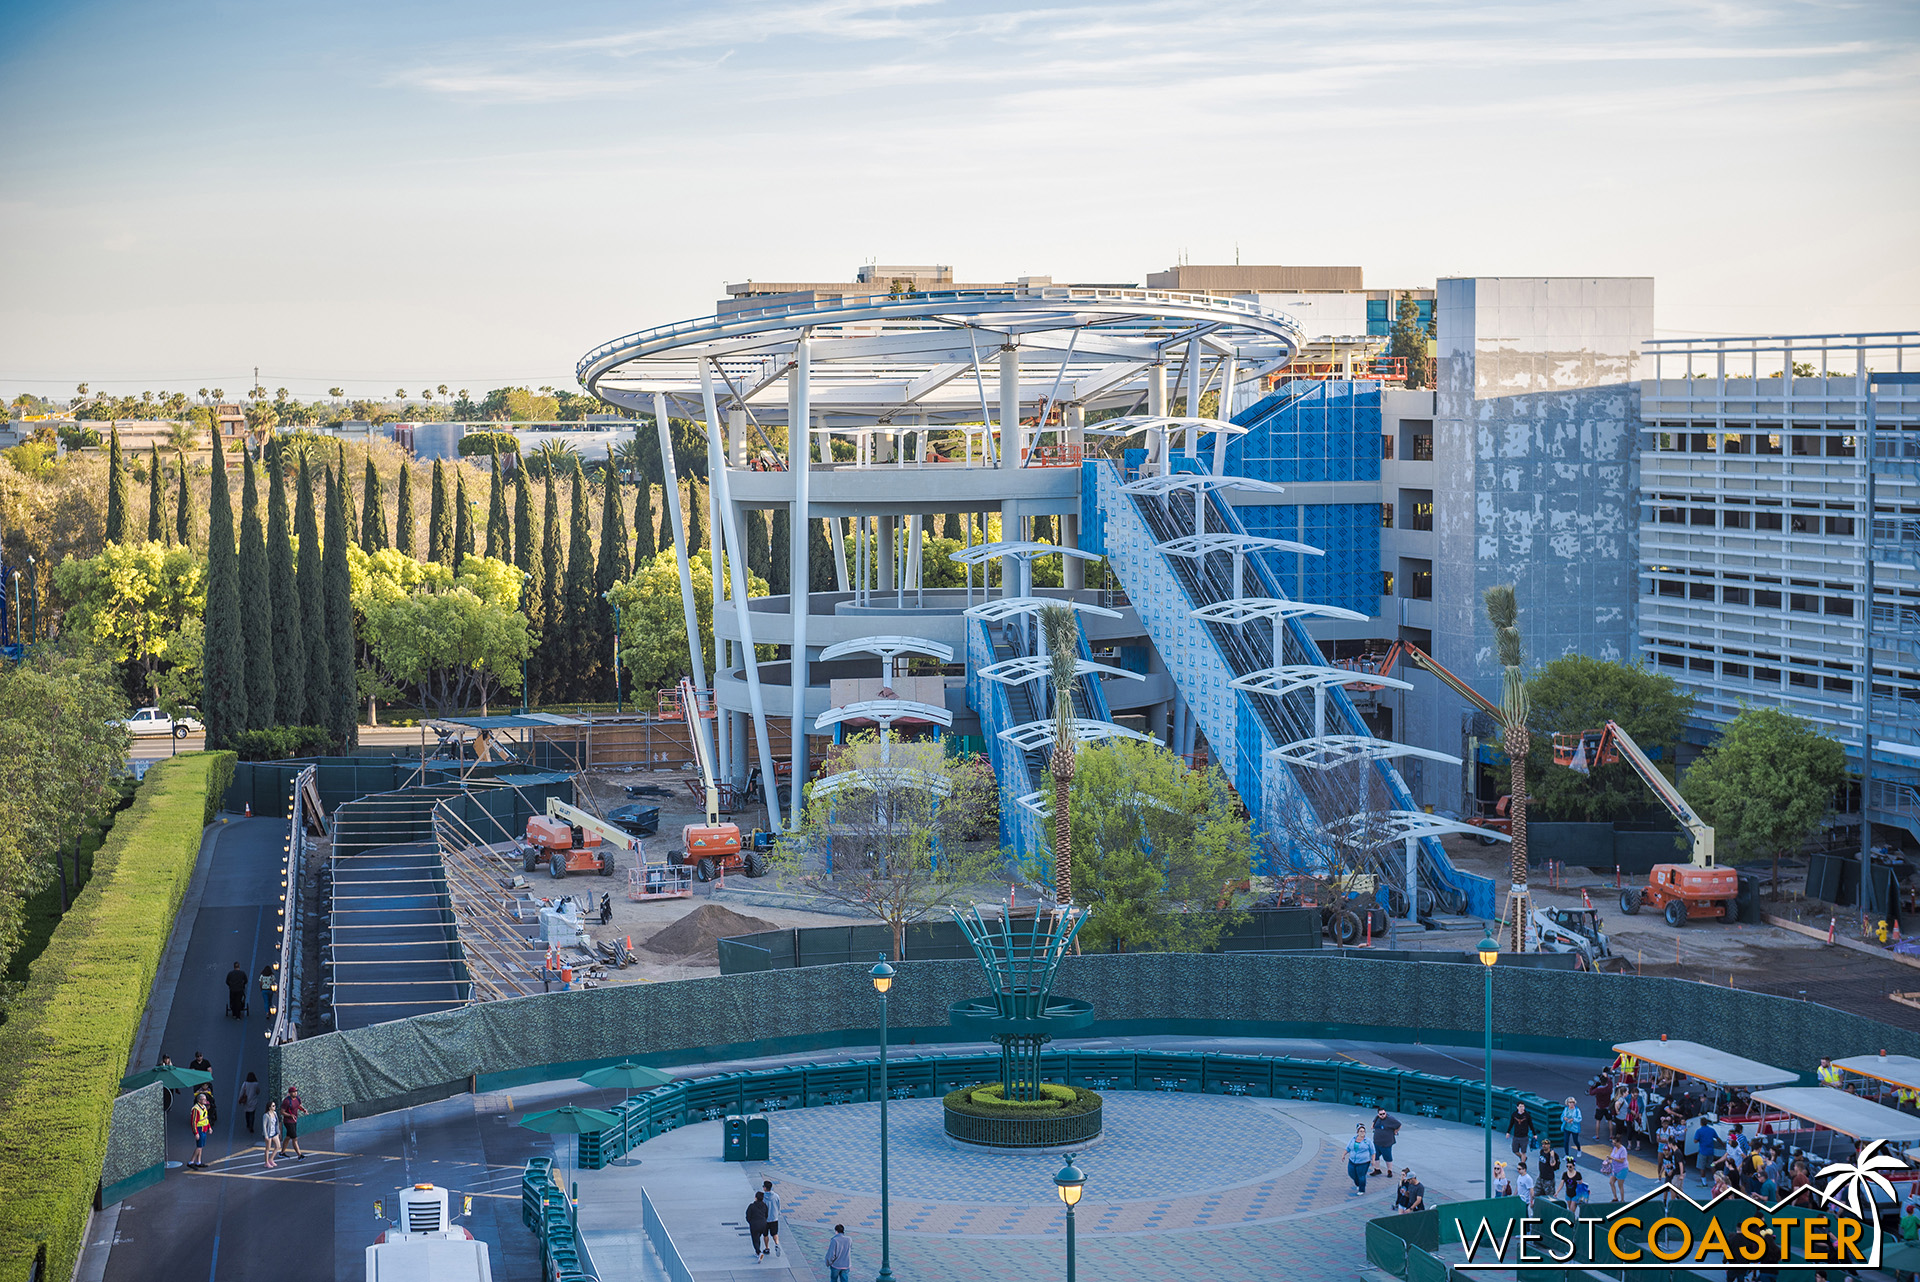 Welcome to the new Pixar Pals parking structure!